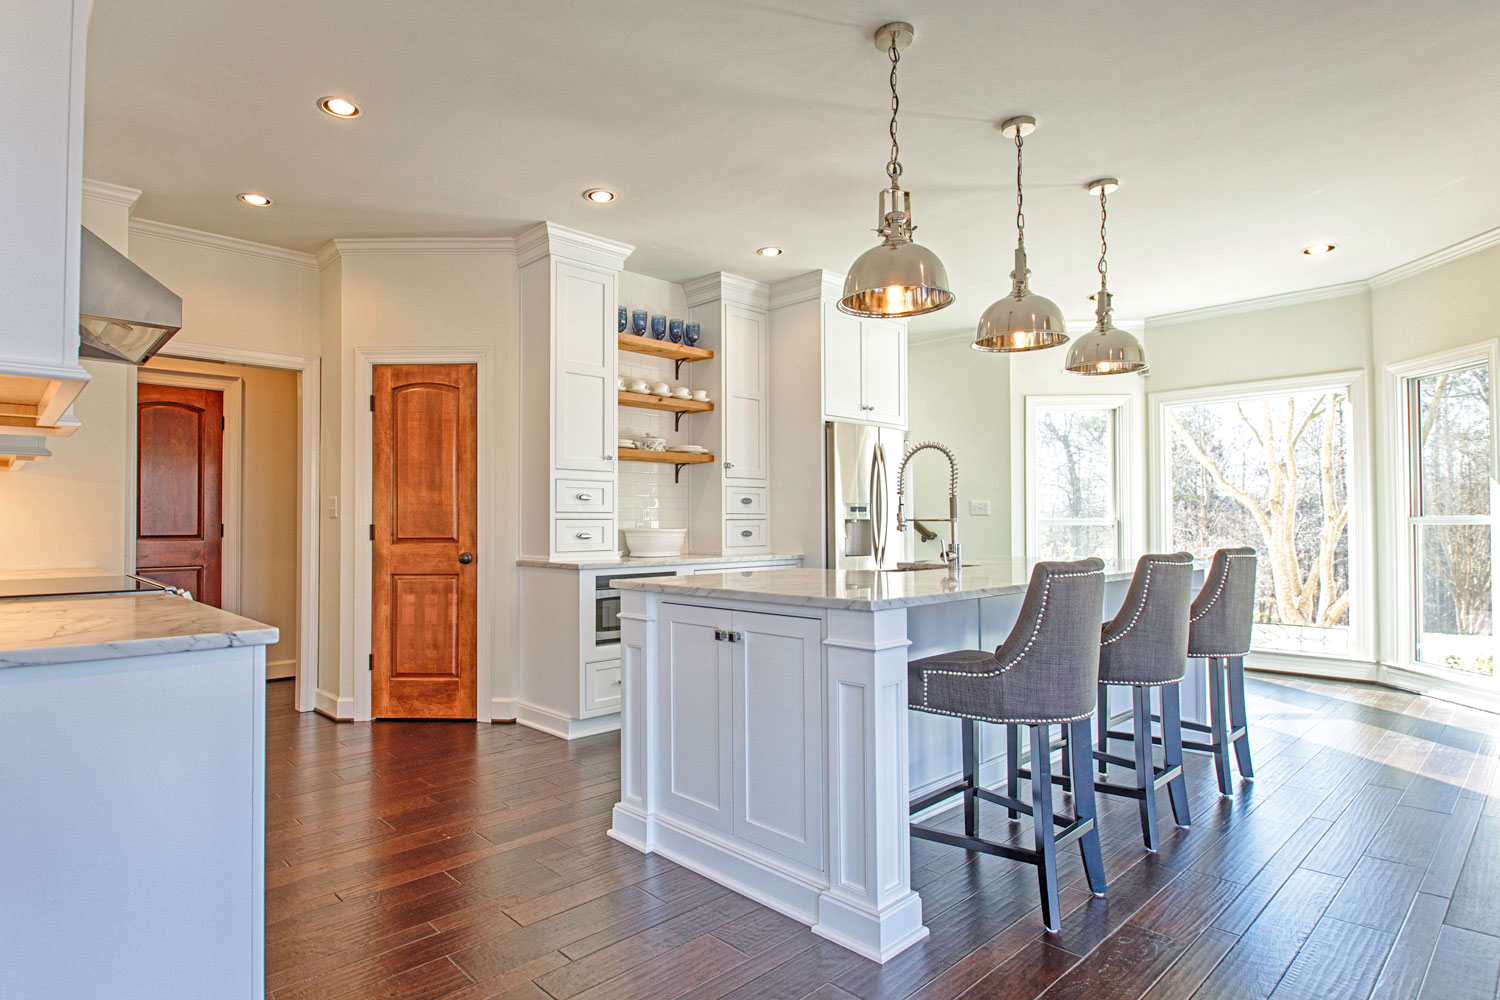 Recessed canned lighting on a dimmer switch provides ample light for this space.